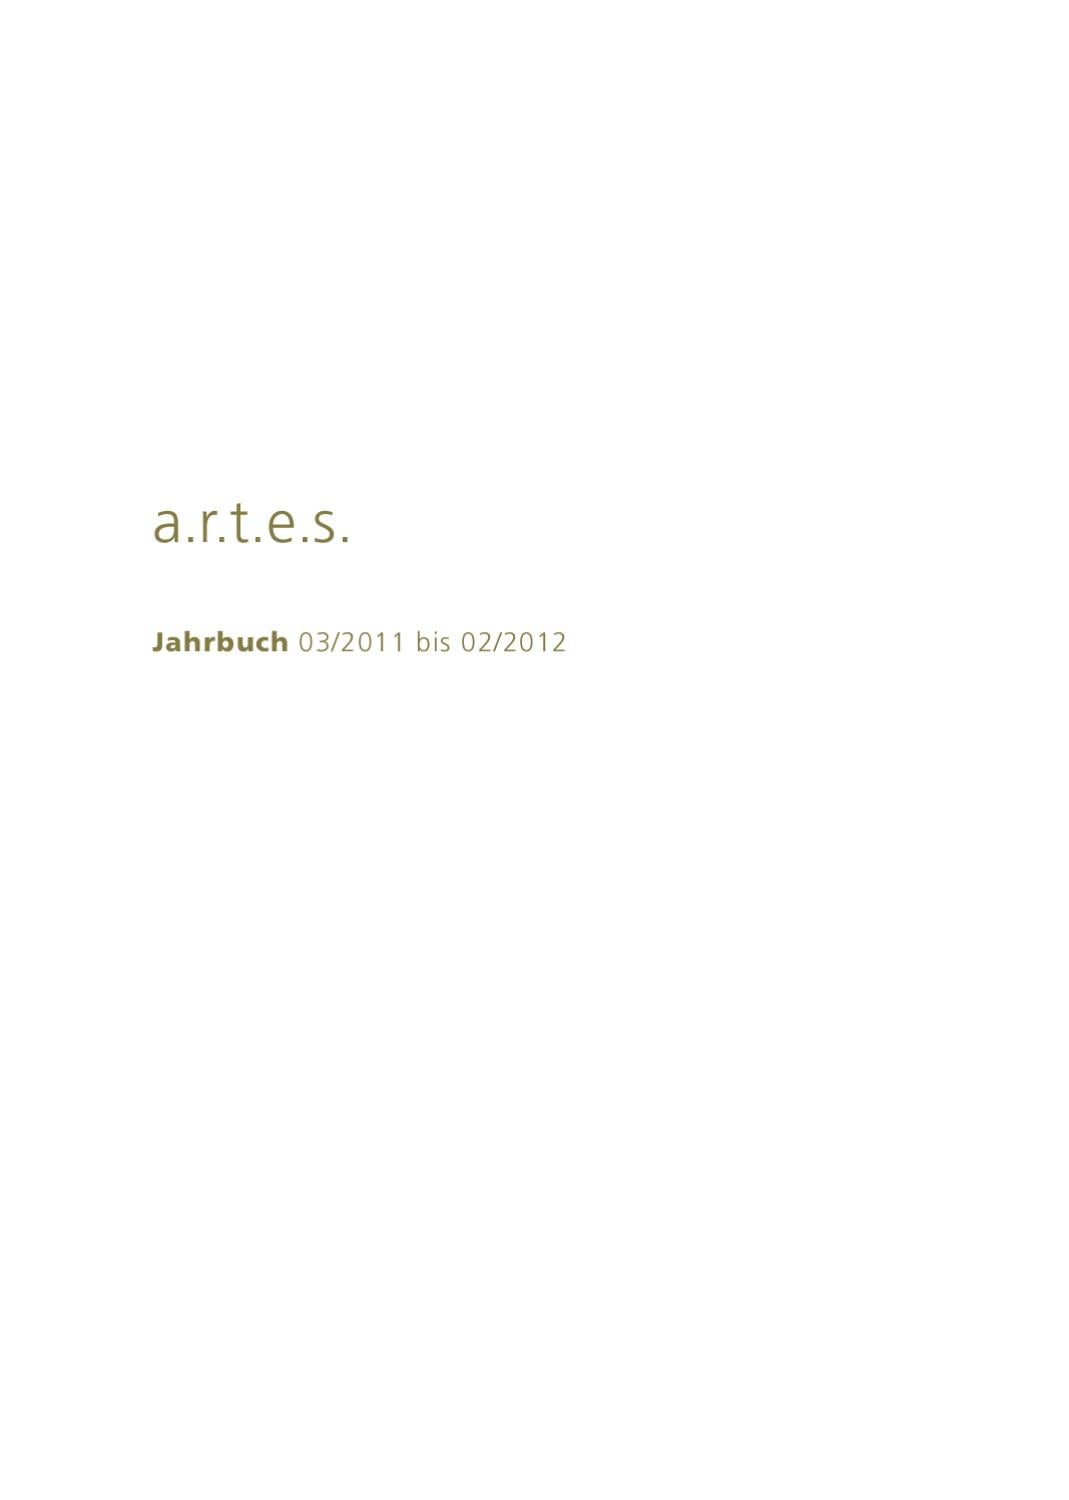 artes2012 by Dominik Baumgarten - issuu